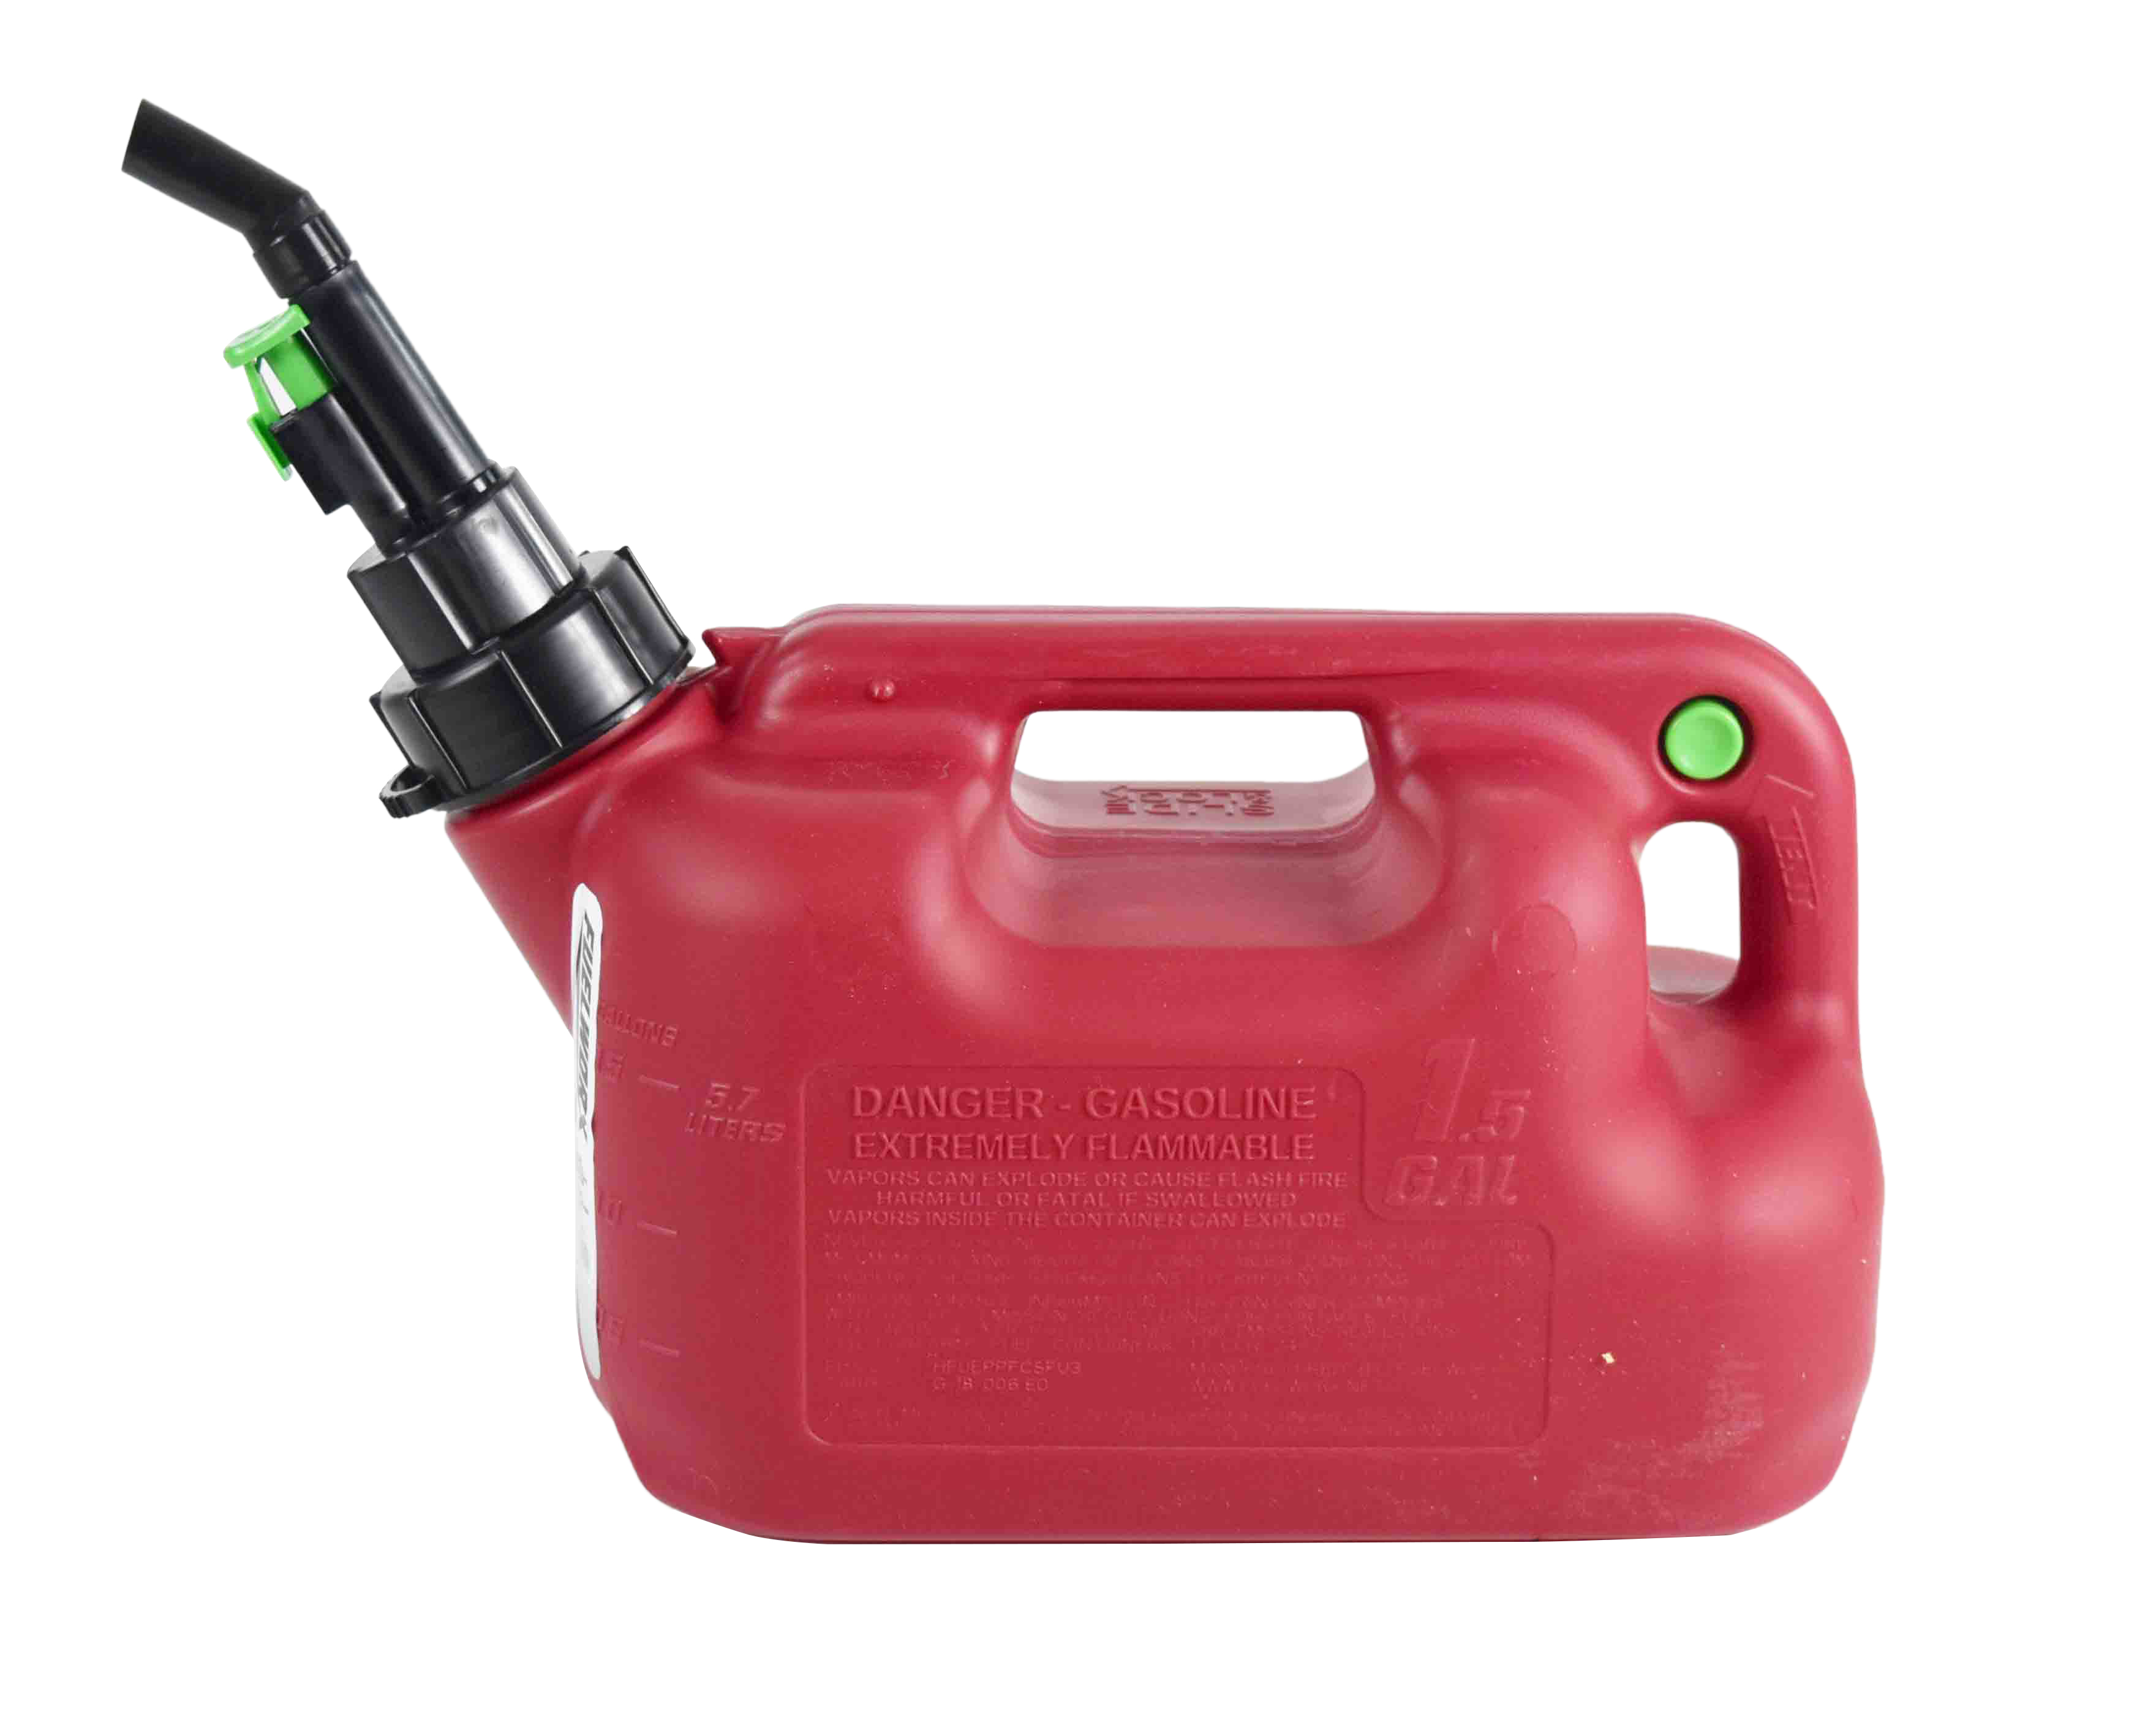 Fuelworx-Red-1.5-Gallon-Stackable-Fast-Pour-Gas-Fuel-Cans-CARB-Compliant-Made-in-The-USA-1.5-Gallon-Gas-Can-Single-image-4